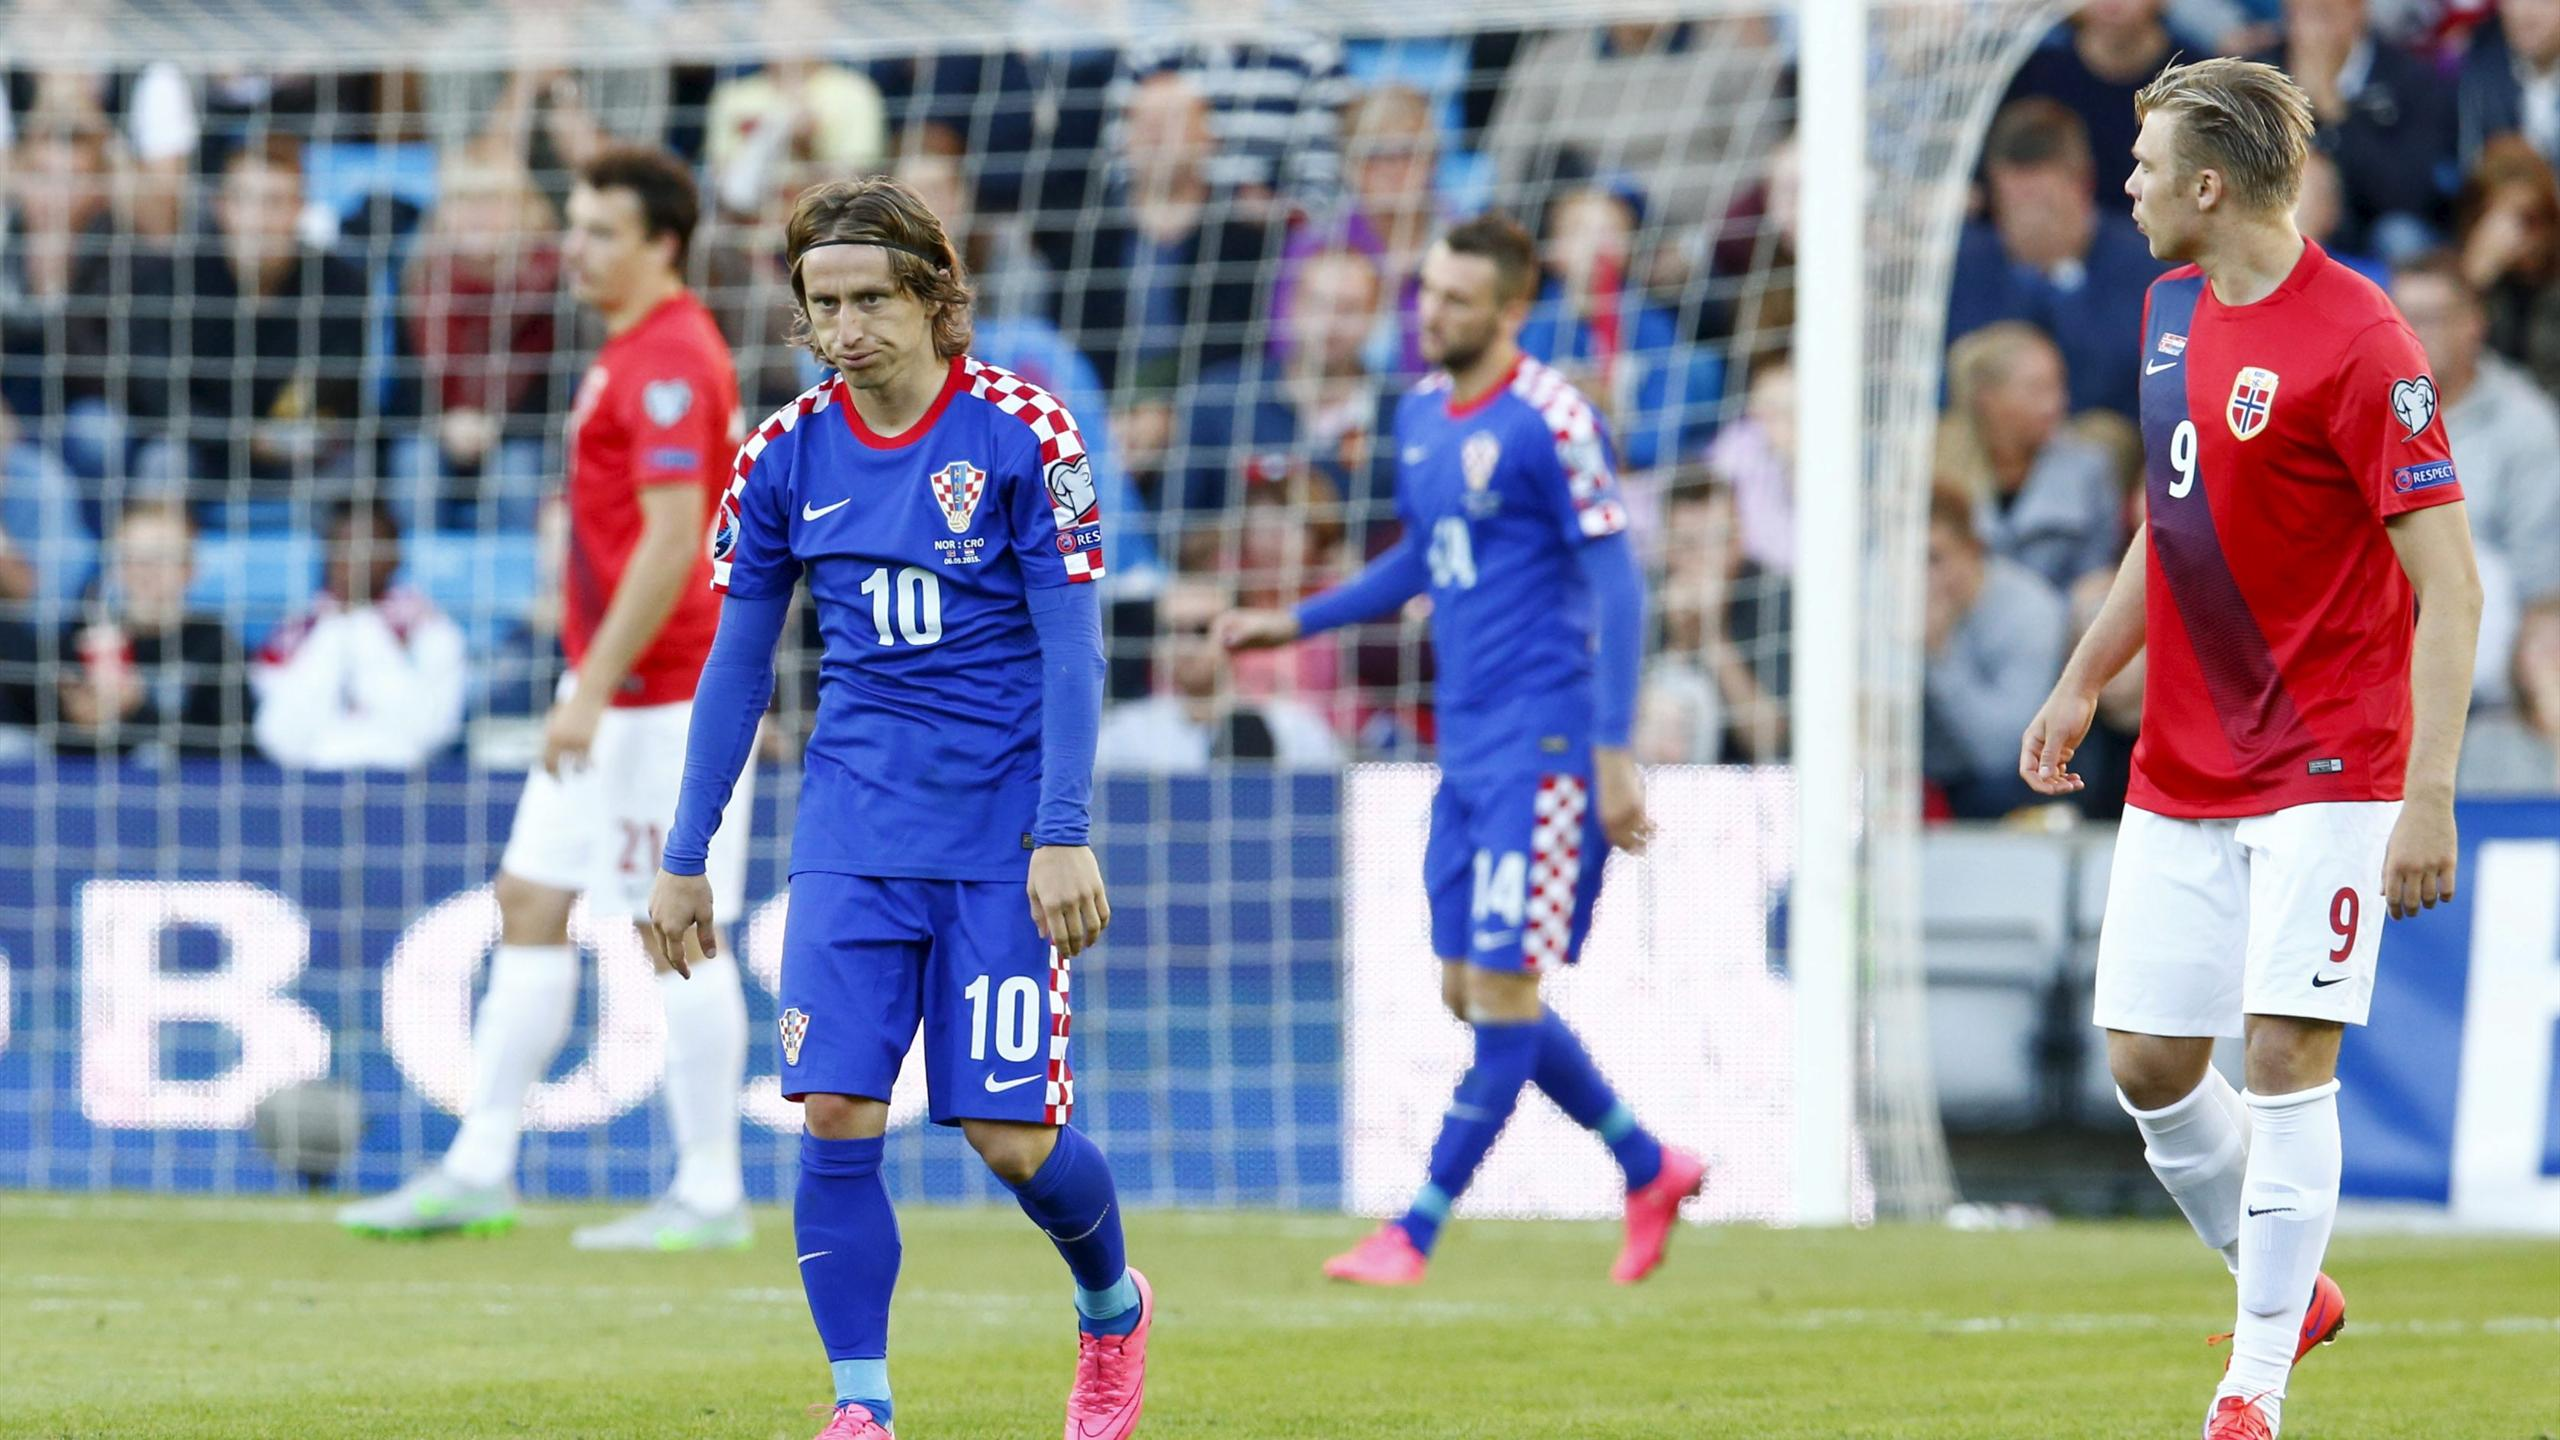 Croatia's Luka Modric reacts during the Euro 2016 Group H qualifying soccer match against Norwa